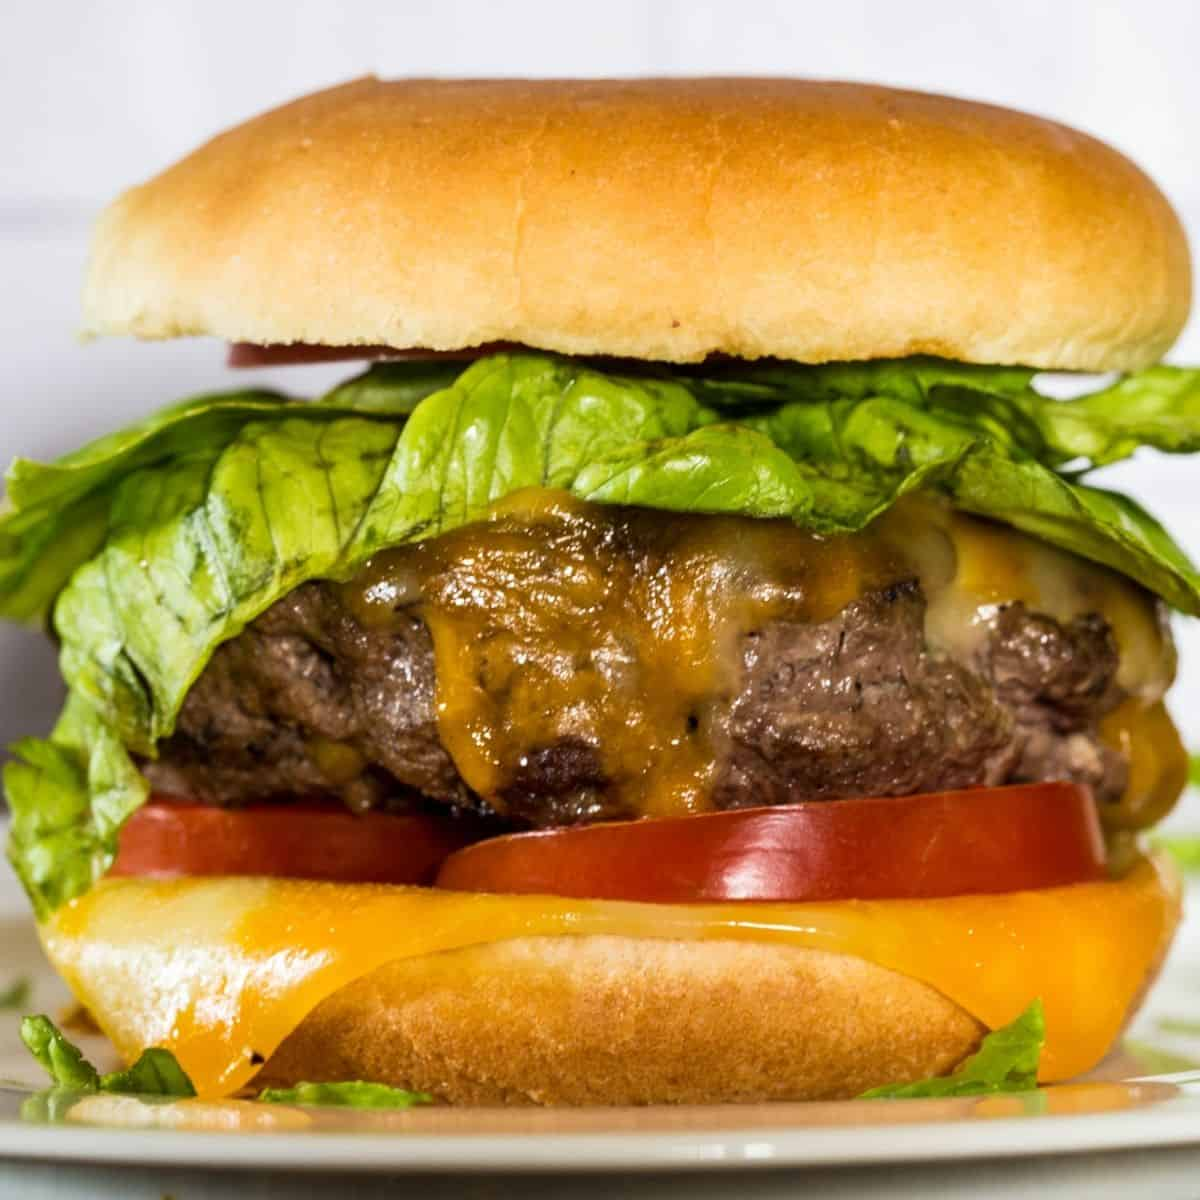 A beef burger topped with cheese in a hamburger bun.